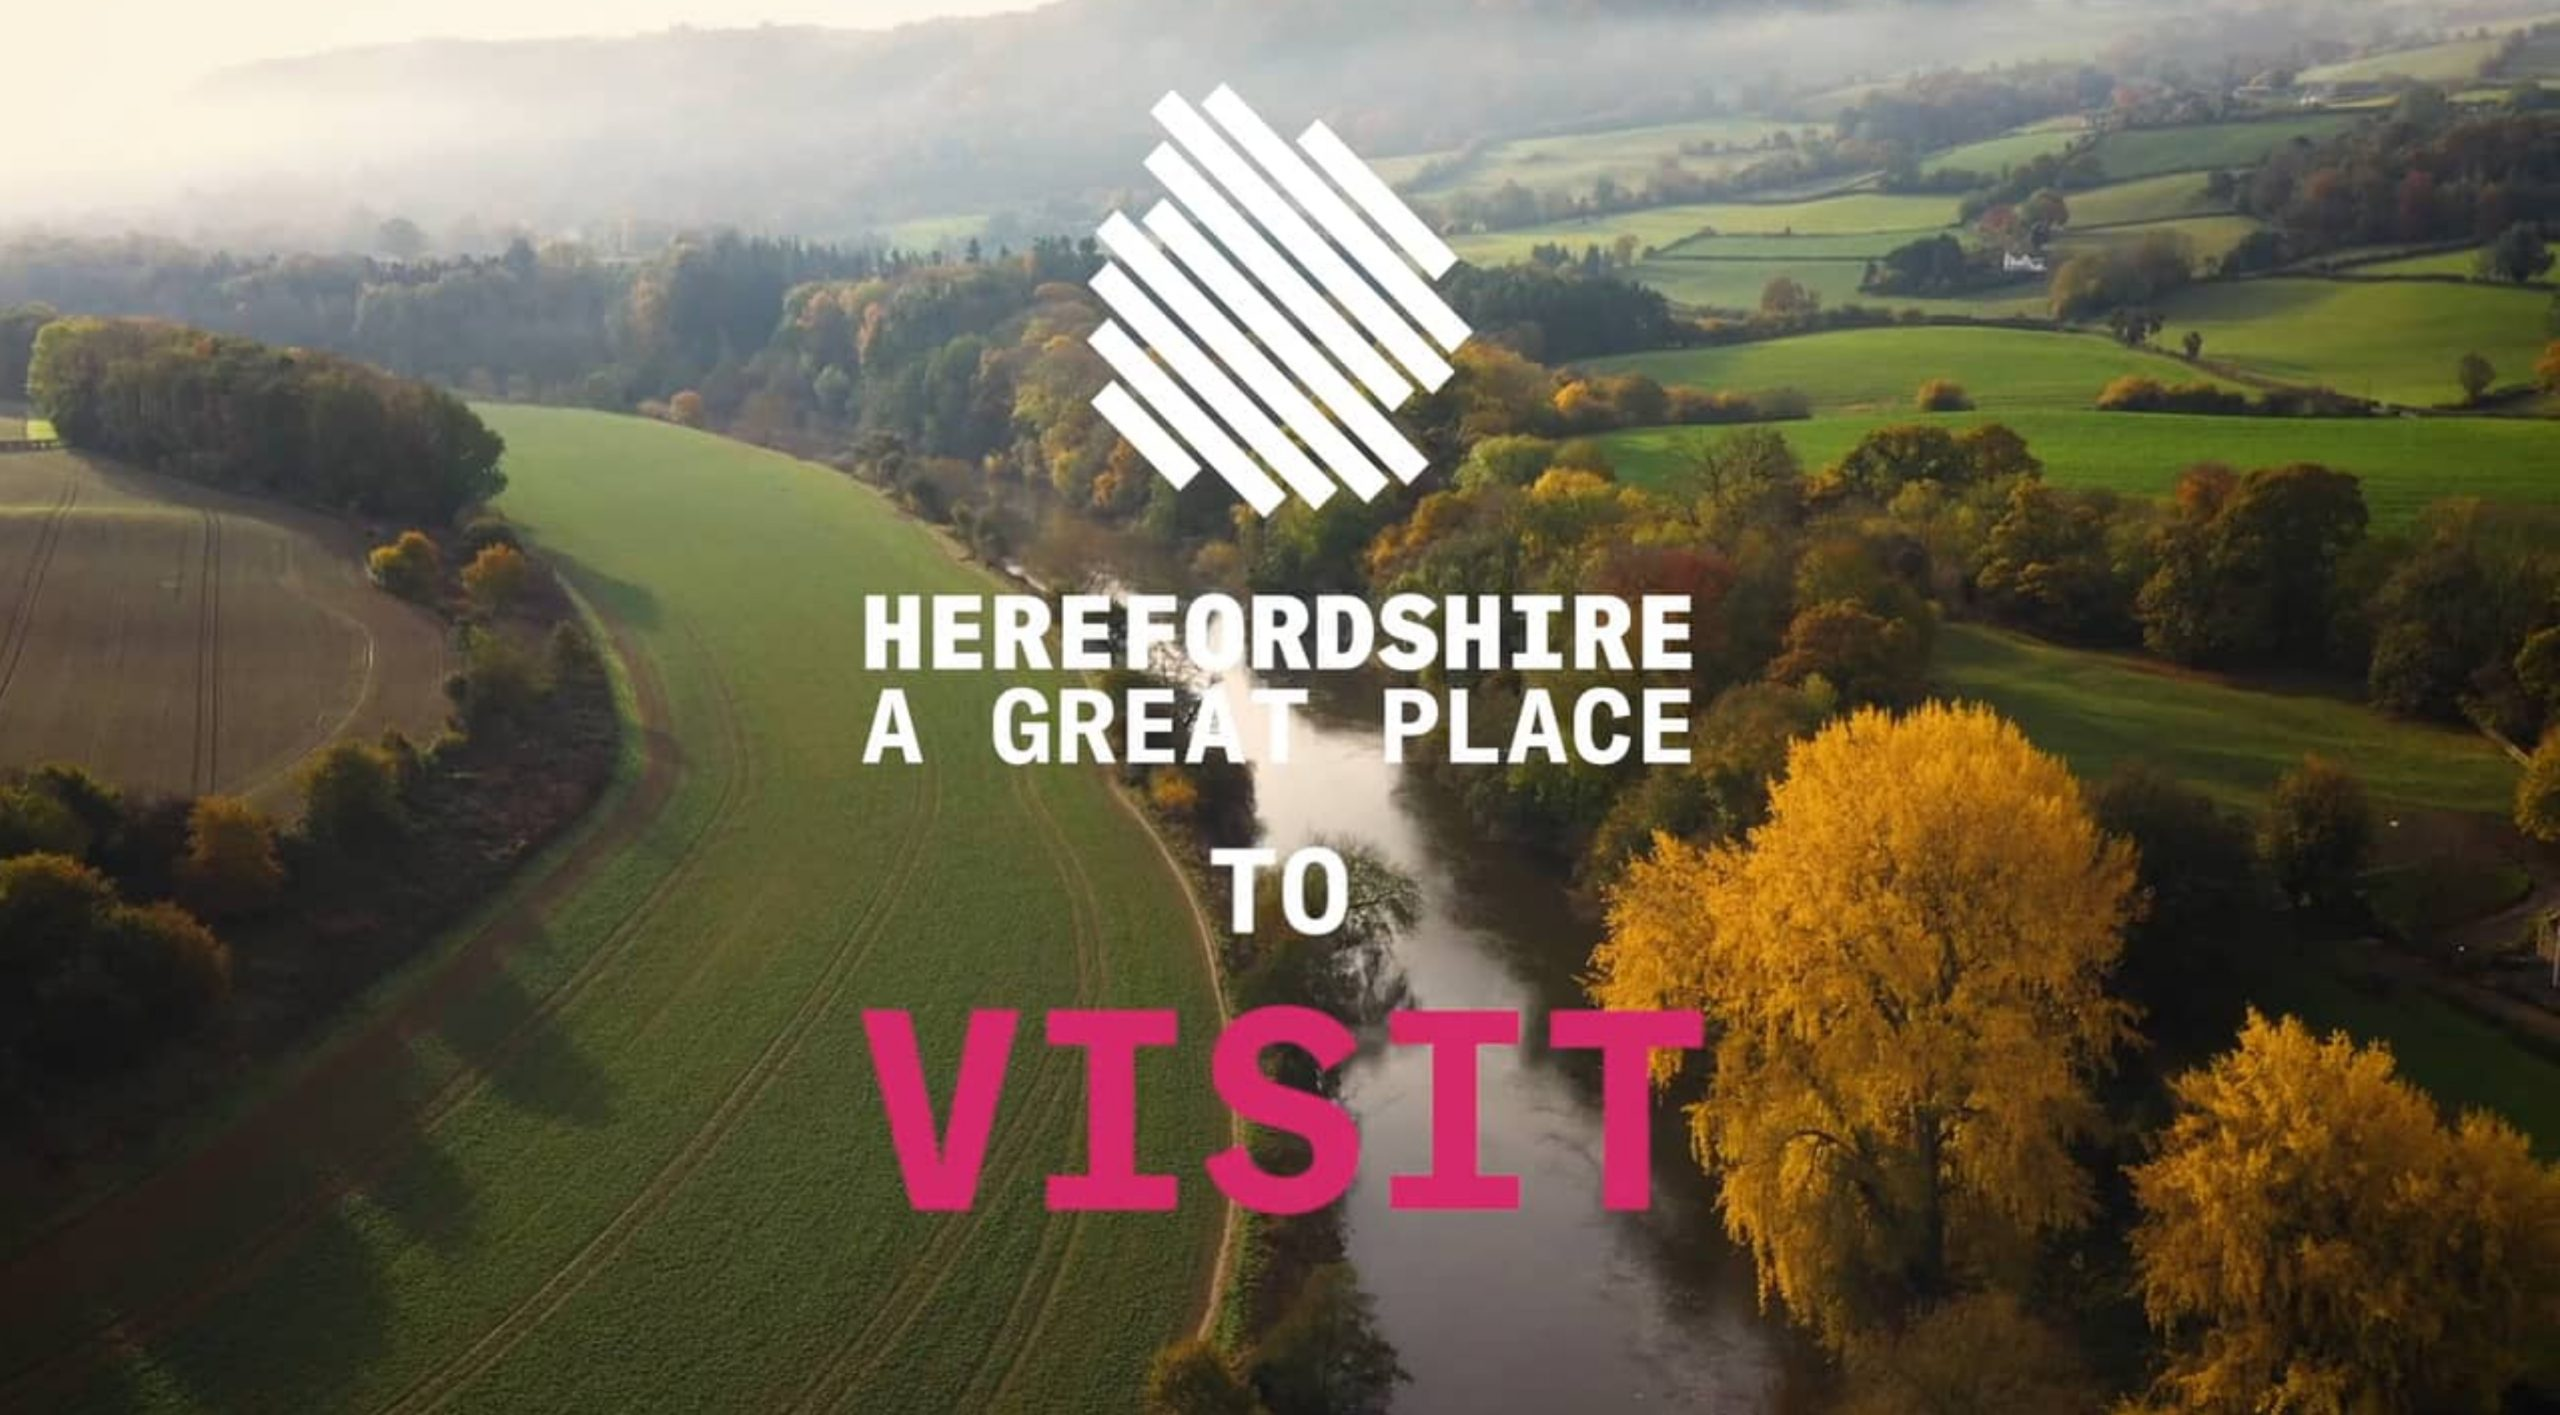 Why Stay in Herefordshire?